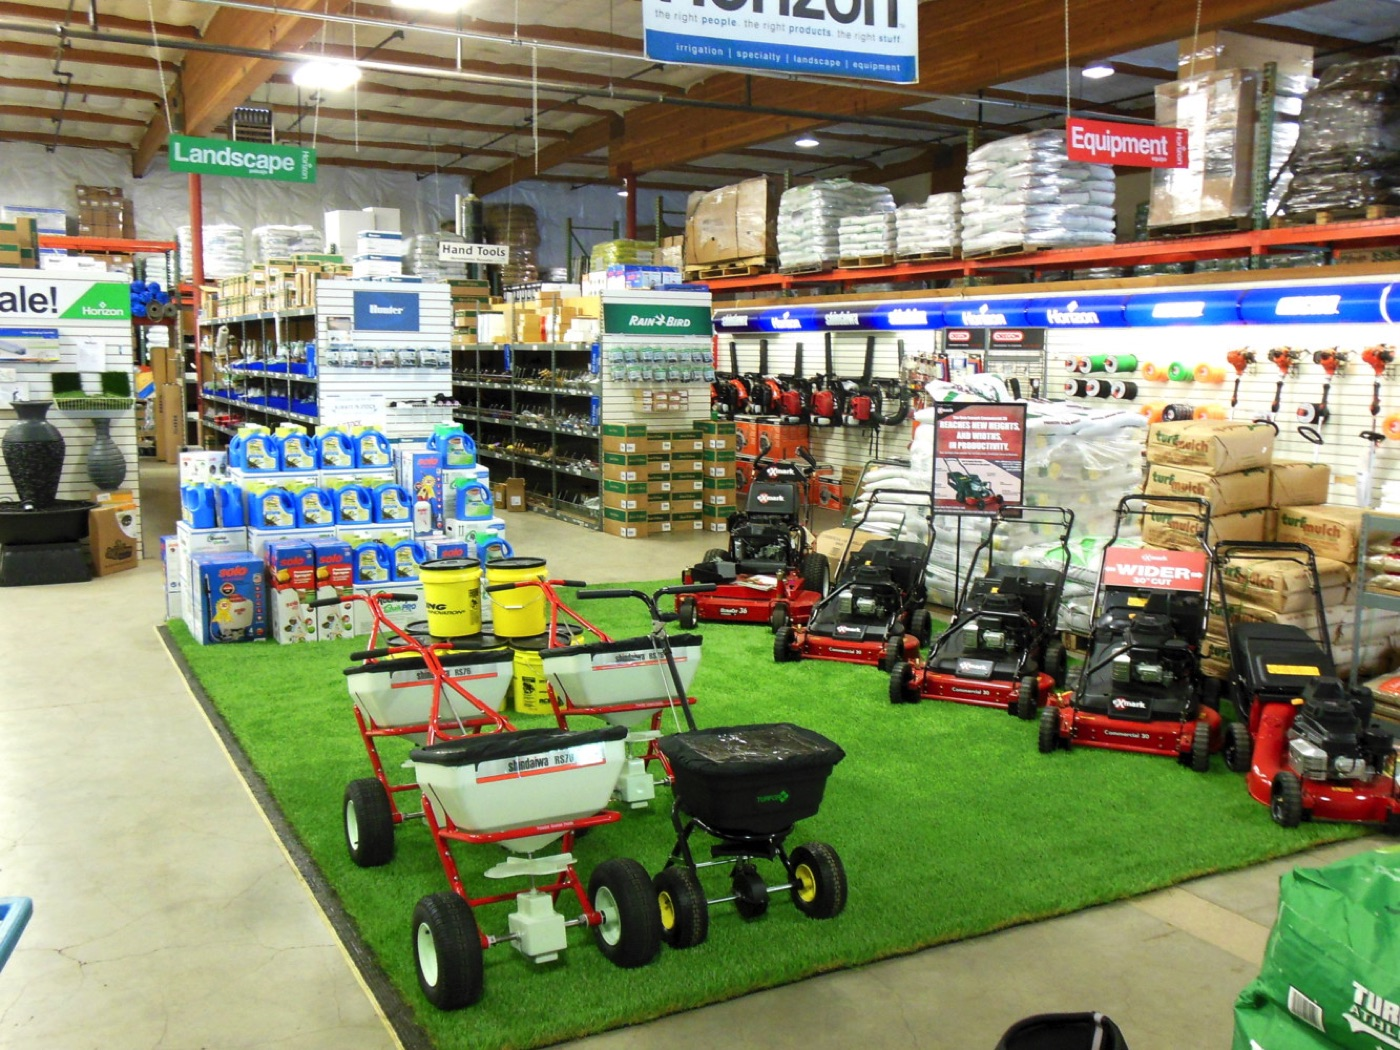 Horizon Milwaukie opened its doors in 1999 and has since become a valued  resource for green industry professionals operating in Portland, OR. - Milwaukie Horizon Distributors - Irrigation & Landscape Supply